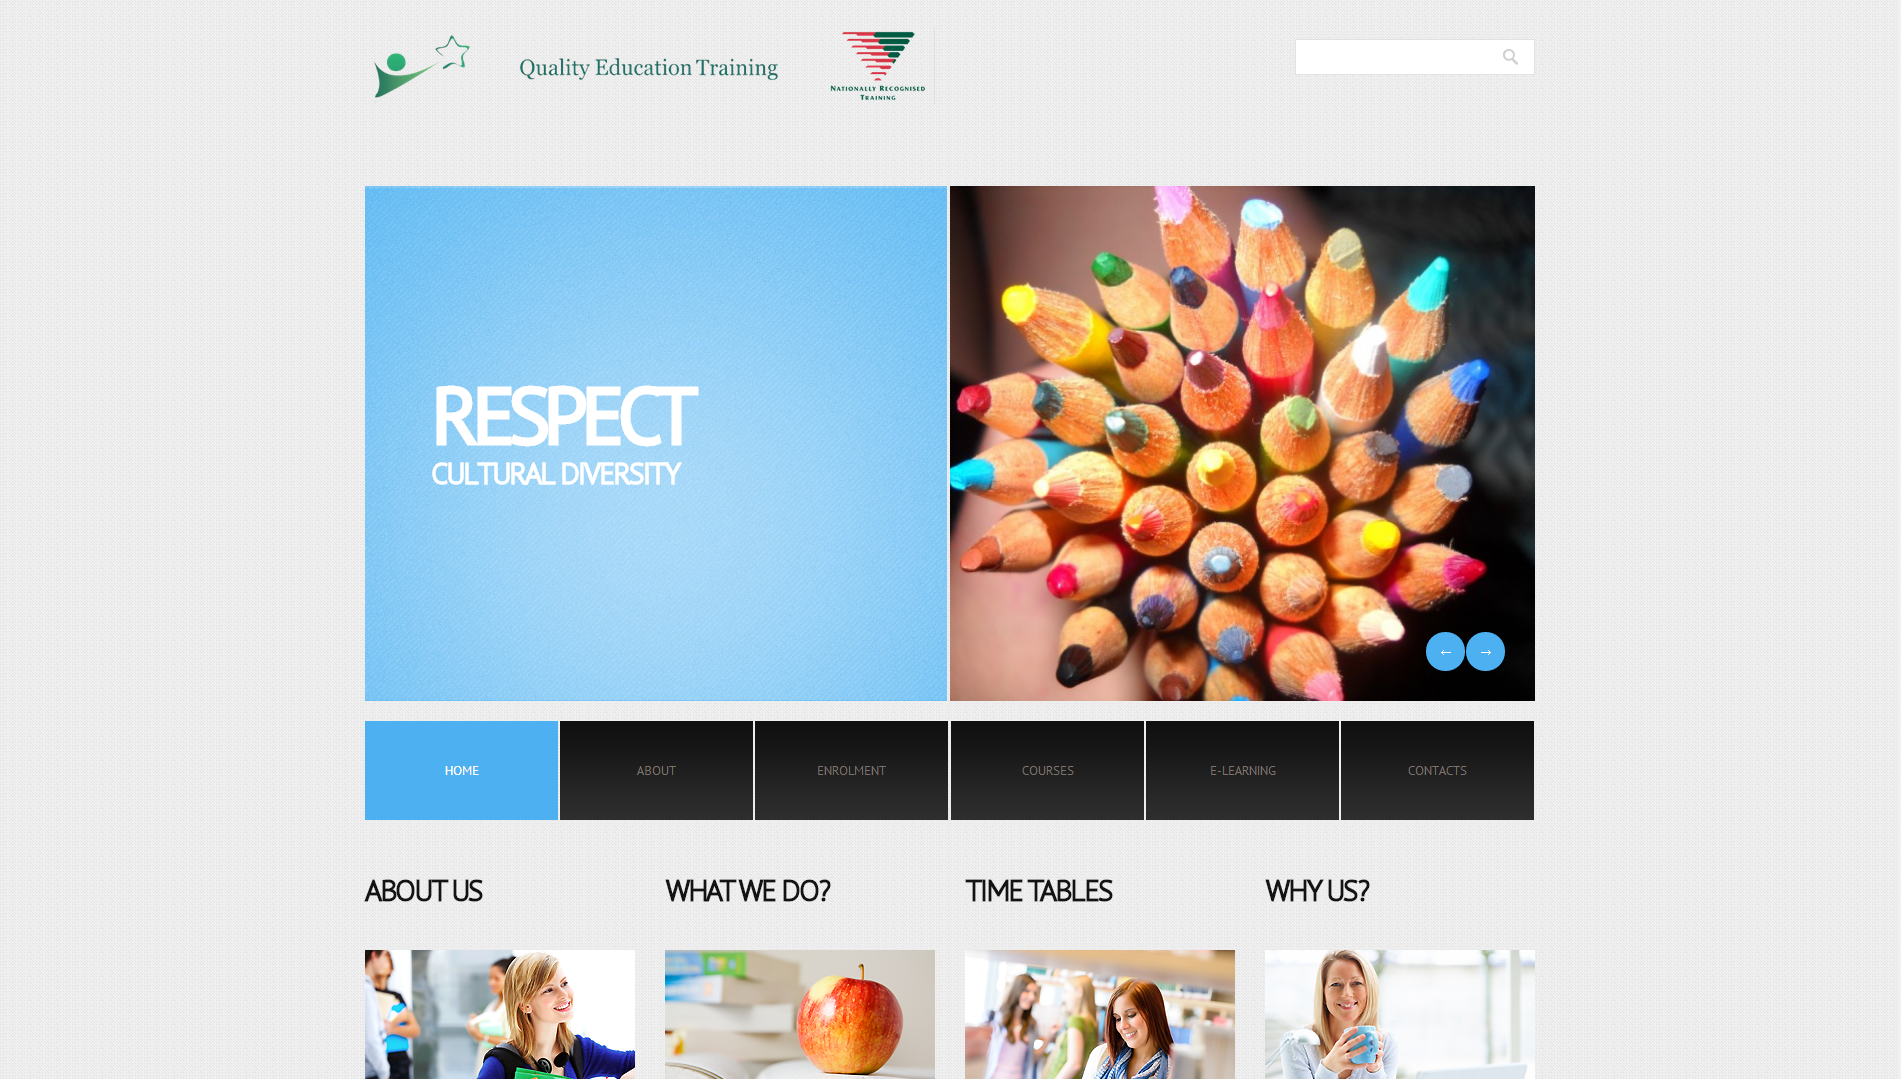 Quality Education Training Website Design Web2day Design